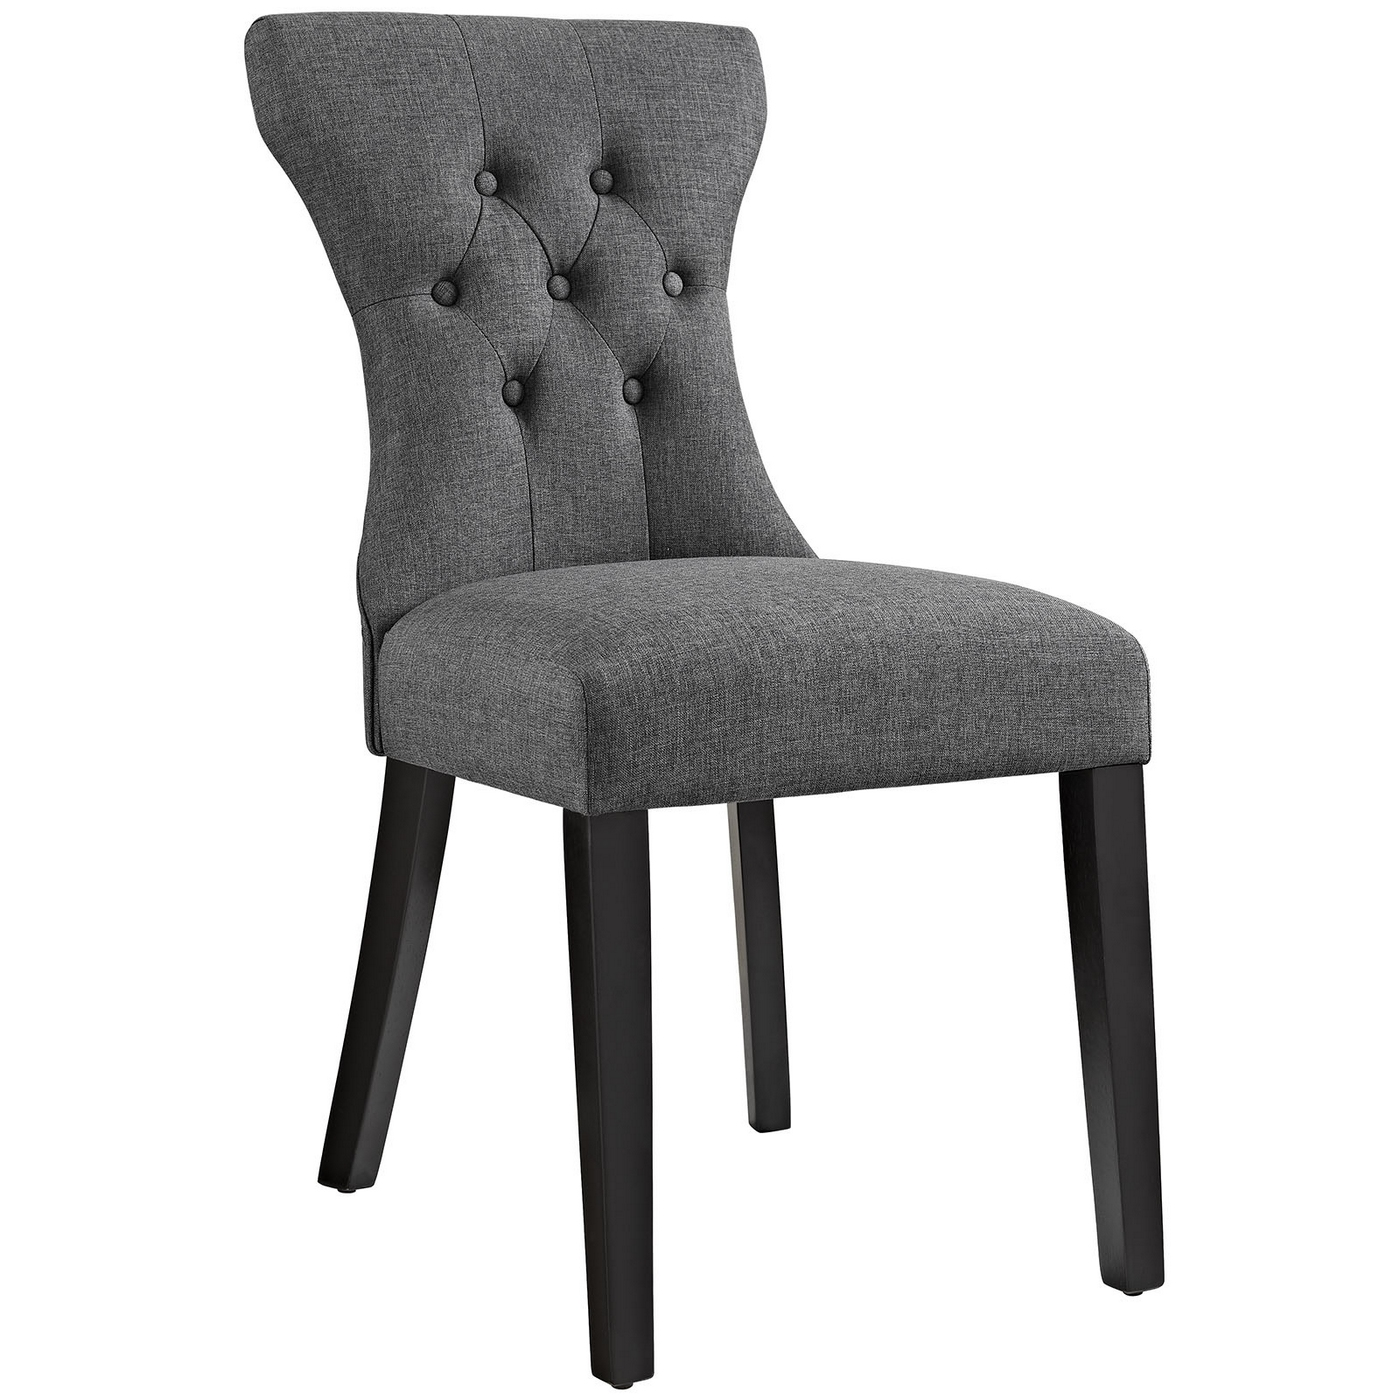 Grey Wood Dining Chairs Silhouette Modern Tapered Back Dining Side Chair With Wood